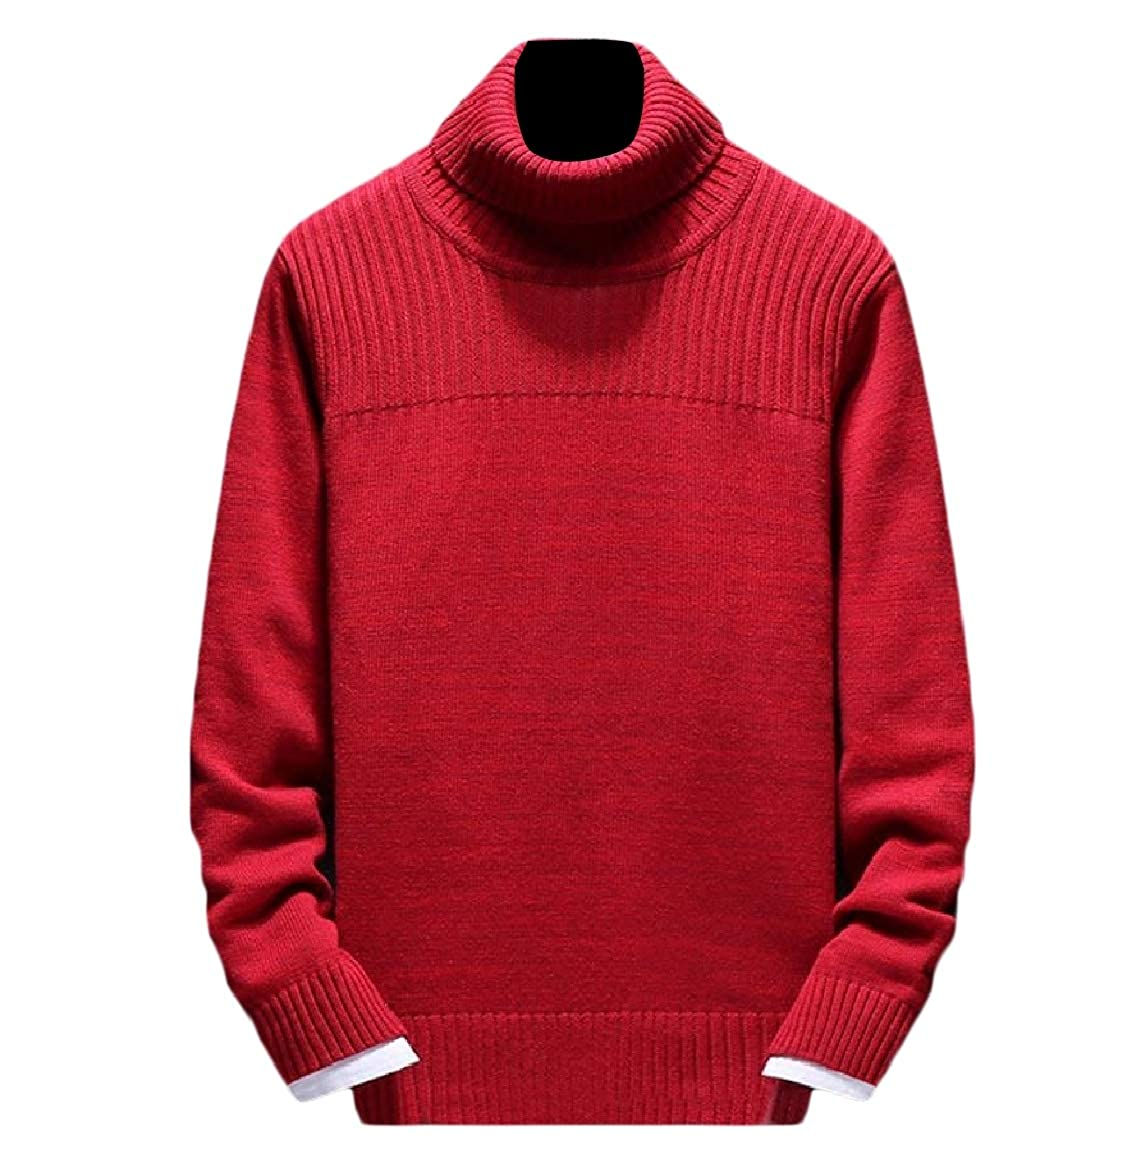 YUNY Mens Pure Color Turtleneck Thermal Ribbed Knit Pullover Sweaters Red XL